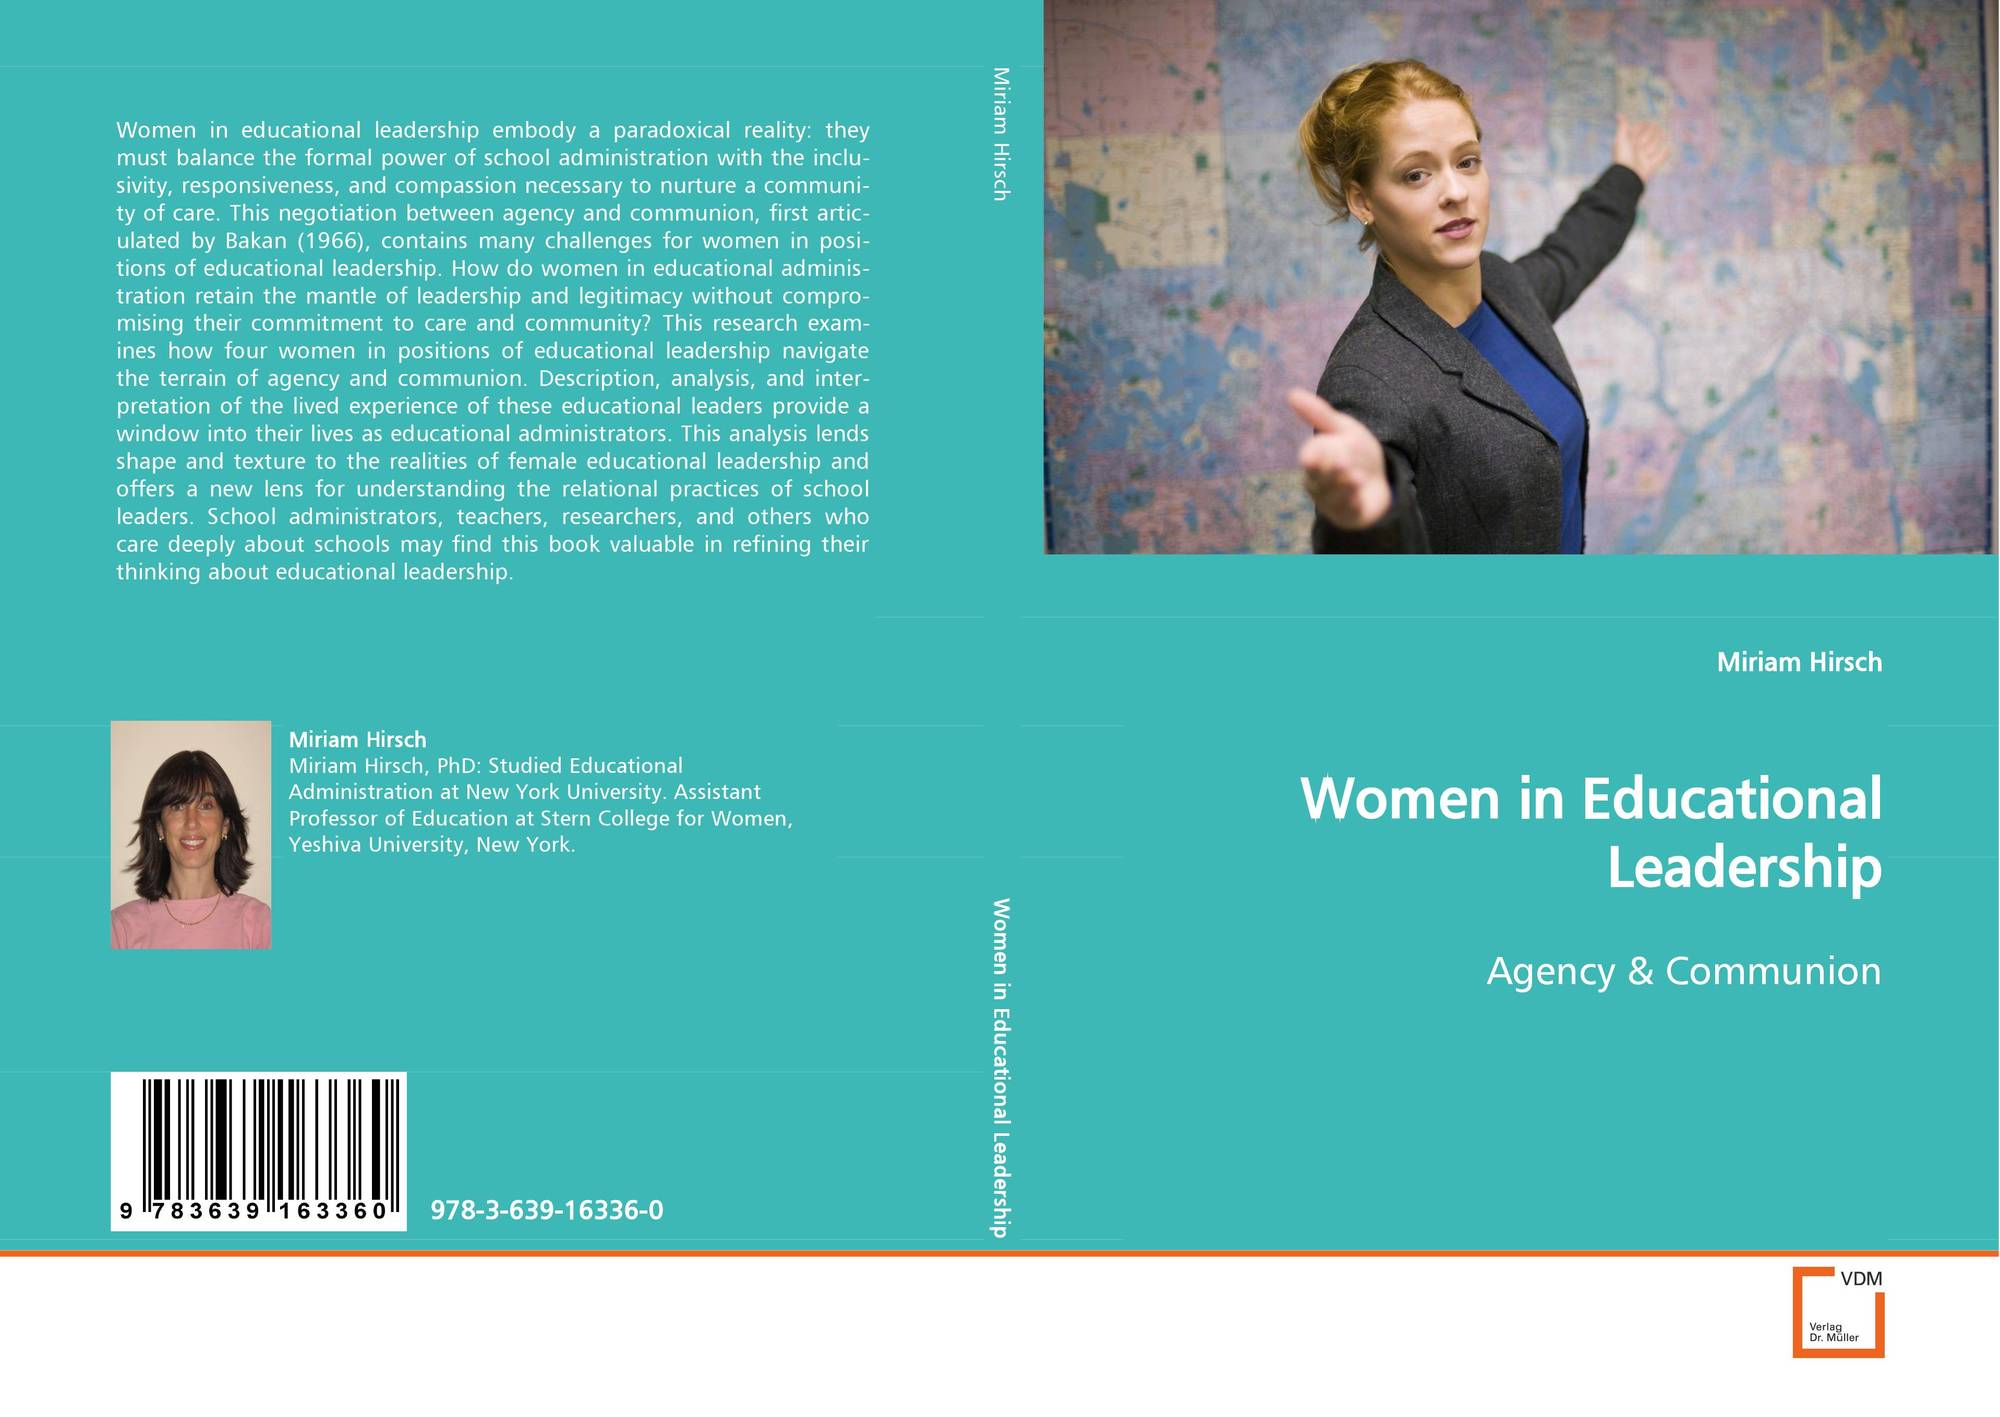 dissertations women educational leadership Educational leadership dissertation topics: how to avoid over-worn problems writing your educational leadership dissertation can be challenging for many reasons, but one of the biggest happens long before you.